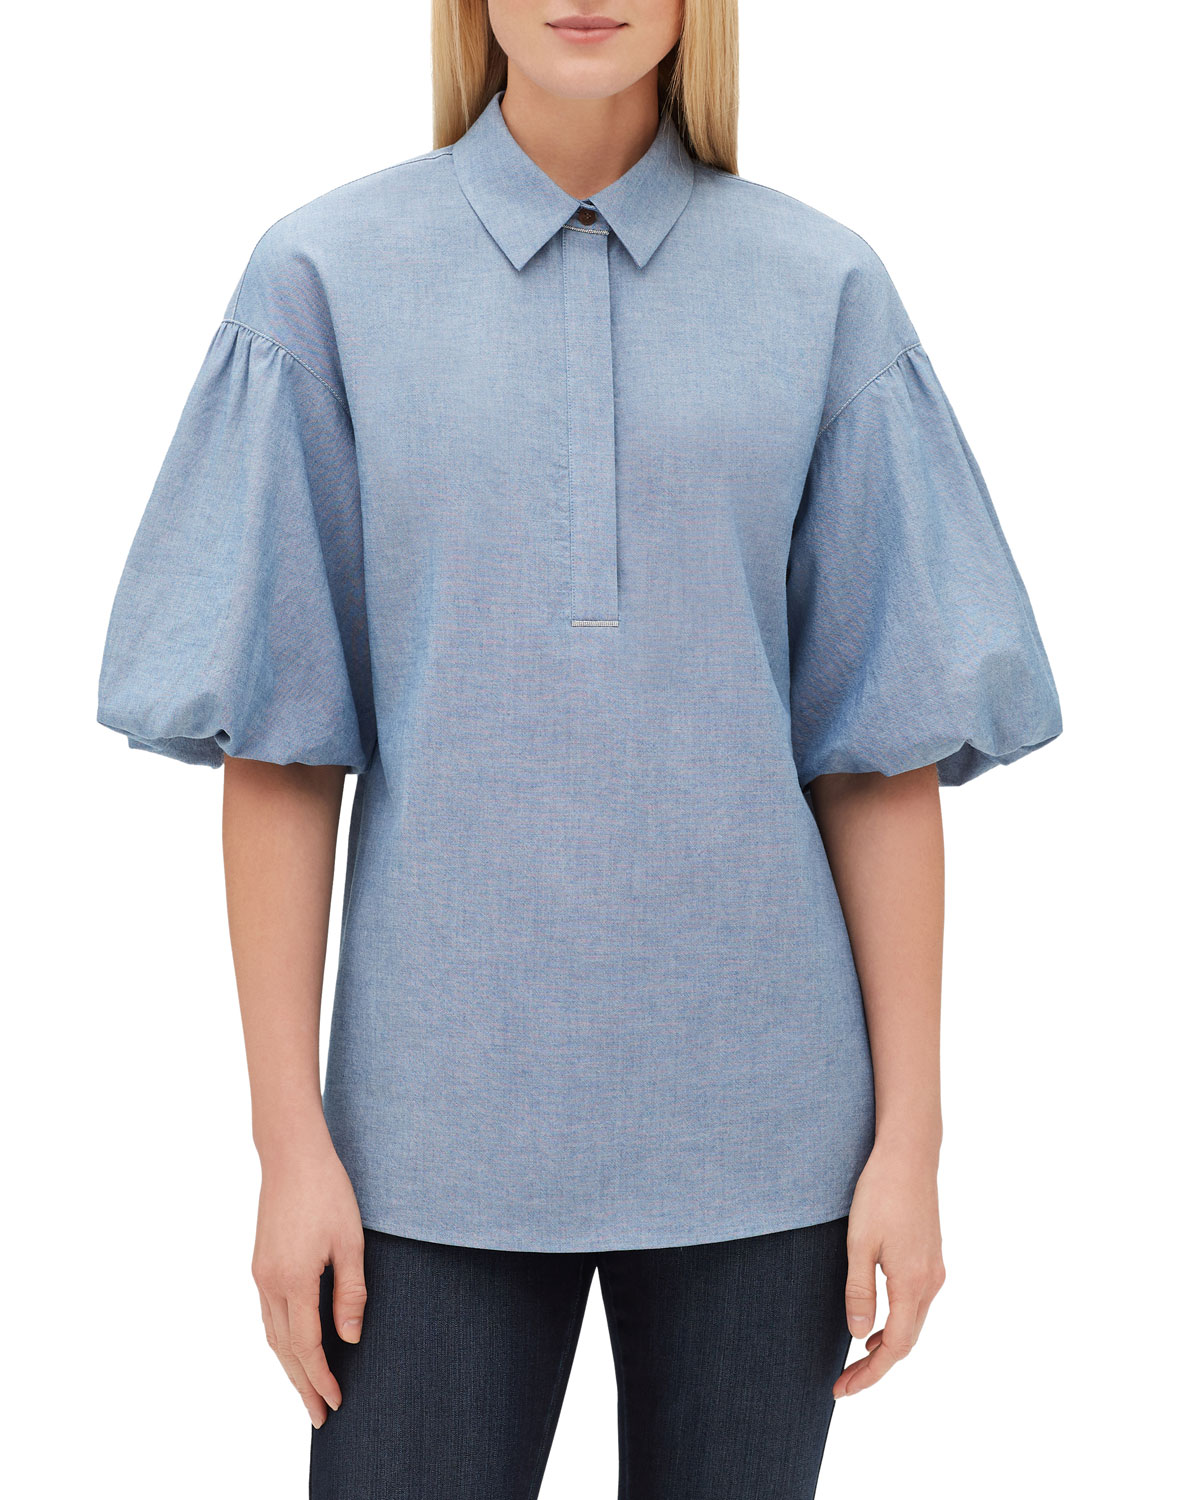 Pia Short Puff-Sleeve Blouse With Chain Trim in Blue